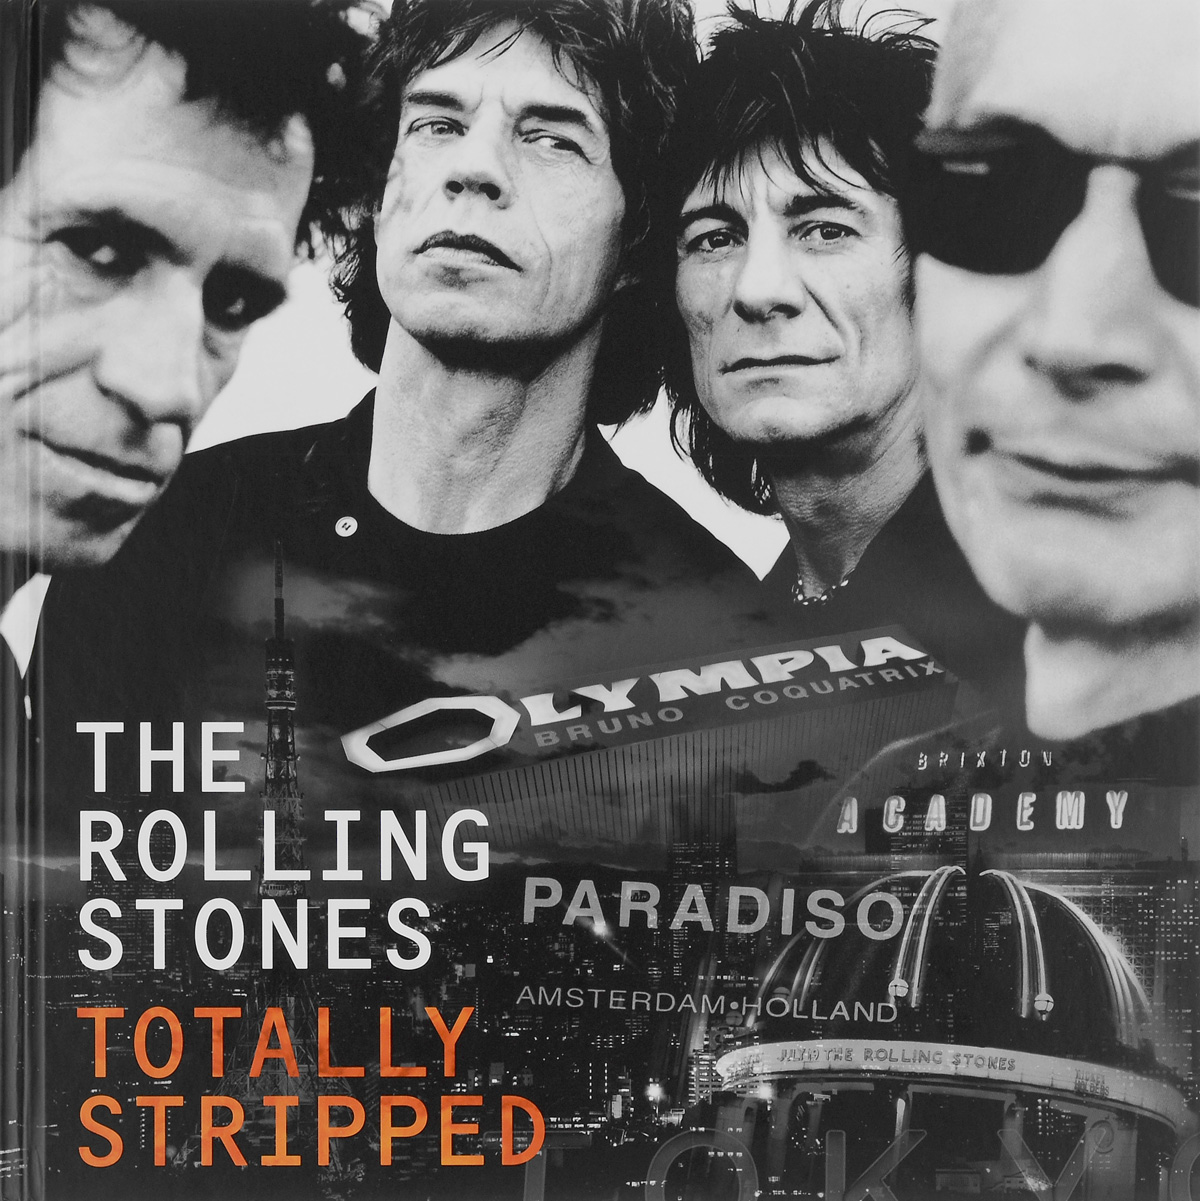 The Rolling Stones The Rolling Stones. The Totally Stripped. Deluxe Edition (CD + 4 DVD) рик уэйкман rick wakeman journey to the centre of the eart deluxe edition cd dvd